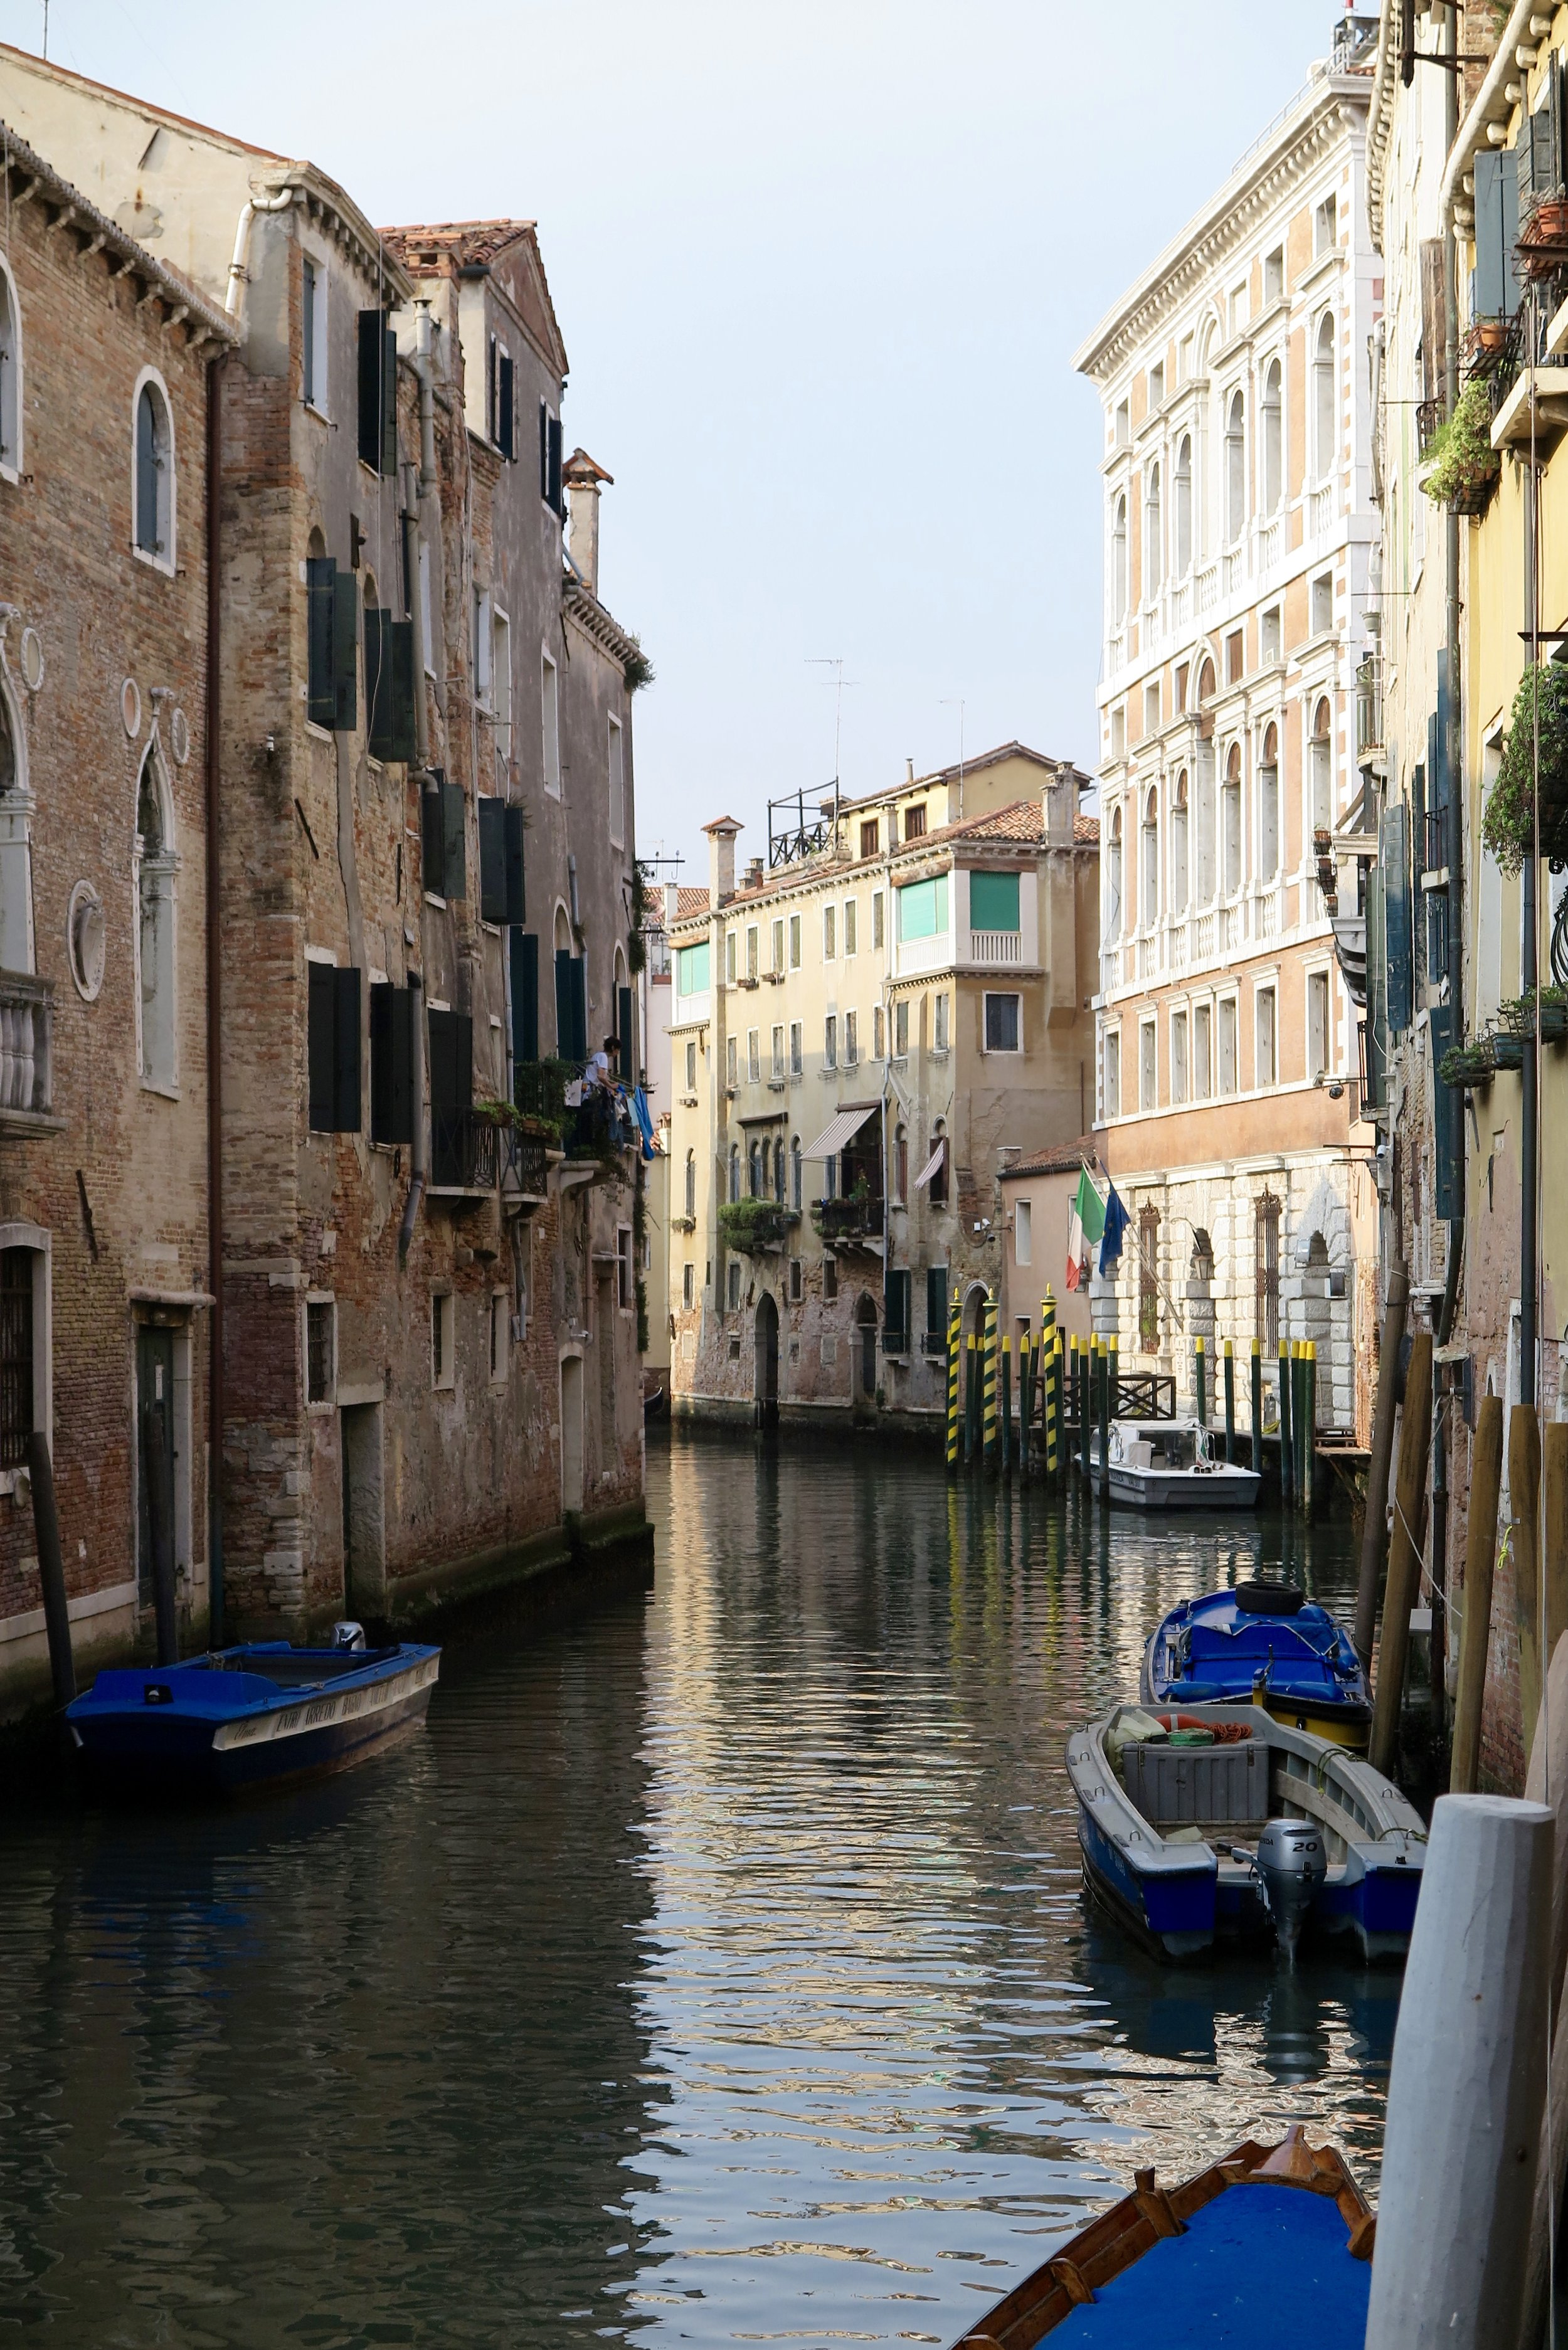 Canals of Venice, Italy, Samantha McNeil